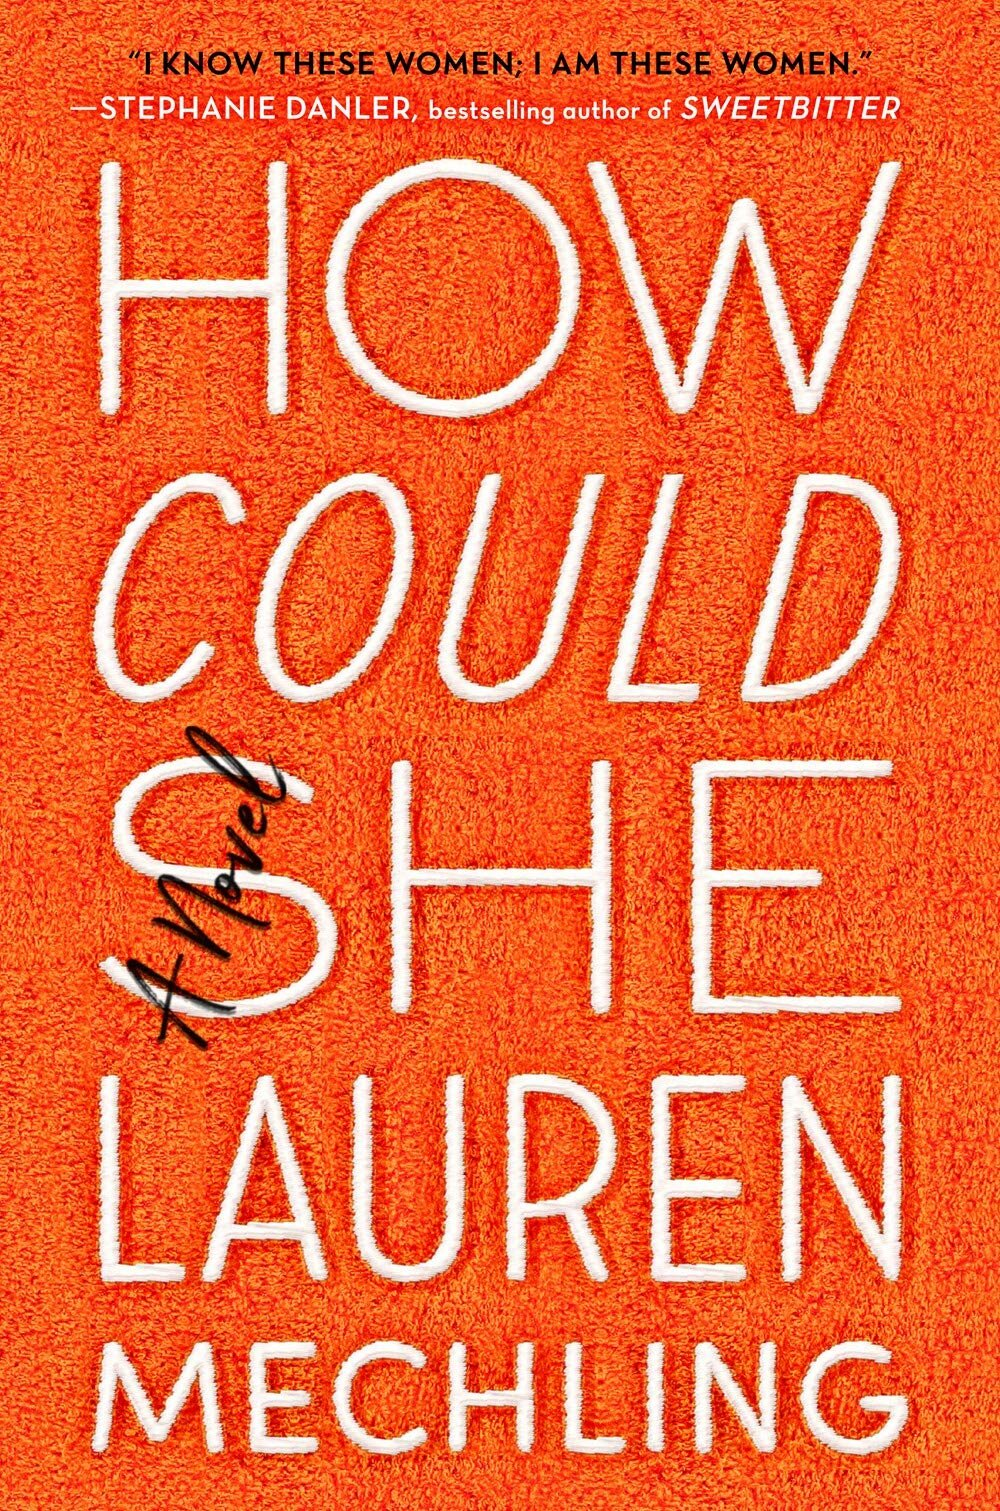 """How Could She: A Novel by Lauren Mechling - Bad on Paper Podcast Book of the MonthRating: 1/5If I'm being honest, I don't even want to write this review because I disliked this book soooo much, but here we go. How Could Should She drops us into the lives of three 30-somethings who all worked at a Toronto magazine in their 20s. Geraldine is floundering in her career and love life and itching to move to New York where Rachel, the unsuccessful YA author, wife, and mother to 2-year old Cleo, and Sunny, the outwardly successful artist who is feeling stuck in a lackluster marriage have lived since moving from Toronto 10+ years ago. The book focuses on the ins and outs of female friendships and how they develop and change in your 30s. The problem for me was there was absolutely no plot, and the book was just a """"she said"""" """"she said"""" in the inner thoughts of each women's mind as they manage their own lives and problems. On top of that the characters were extremely unlikeable. Self-obsessed, insecure, whiny, and judgmental were all I could see while reading. After 100 pages I was so fed up with the women I decided to quit reading it (which I HATE doing, but it was really that bad). A week later I was feeling a bit of guilt about not finishing the book, so I used a free Audible credit to finish listening to the book. I listened to it on 1.5 speed because I wanted to waste as little time as possible listening to these women. The audio made me hate the book even more because the complaints of these women sounded even more whiny out loud than in my head. In the end I'm glad I can say I """"finished"""" it and was able to better understand the discussion when listening to the Bad On Paper Podcast episode, but if I had to do it over again I would never have picked up this book.Is it a must read? Do I even need to answer this question?"""